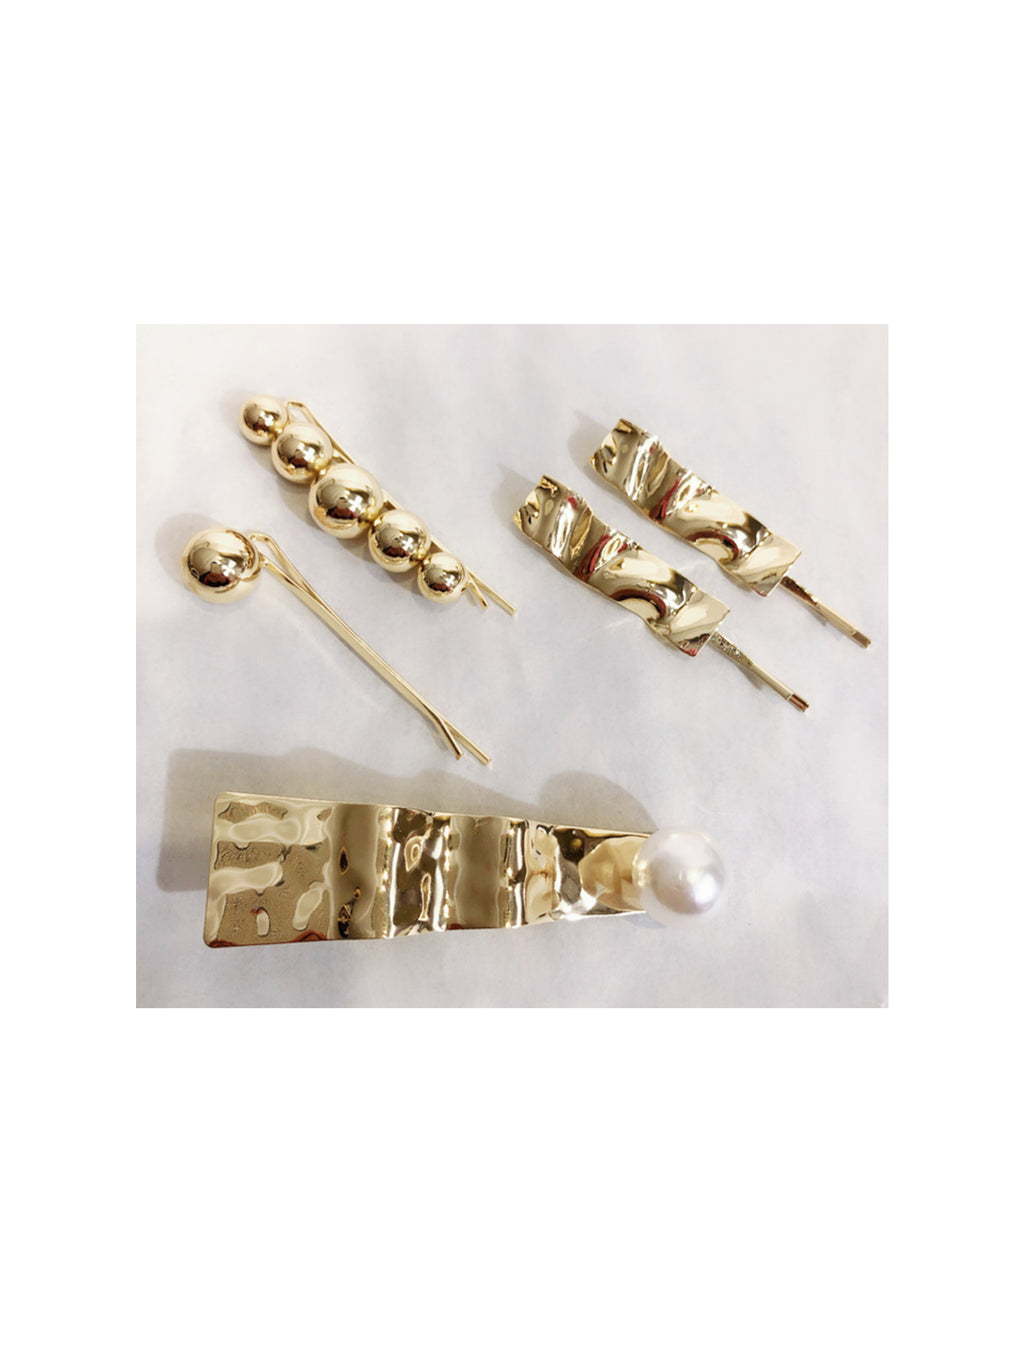 GOLD GEOMETRIC SHAPED HAIR SLIDES (SET OF 5)